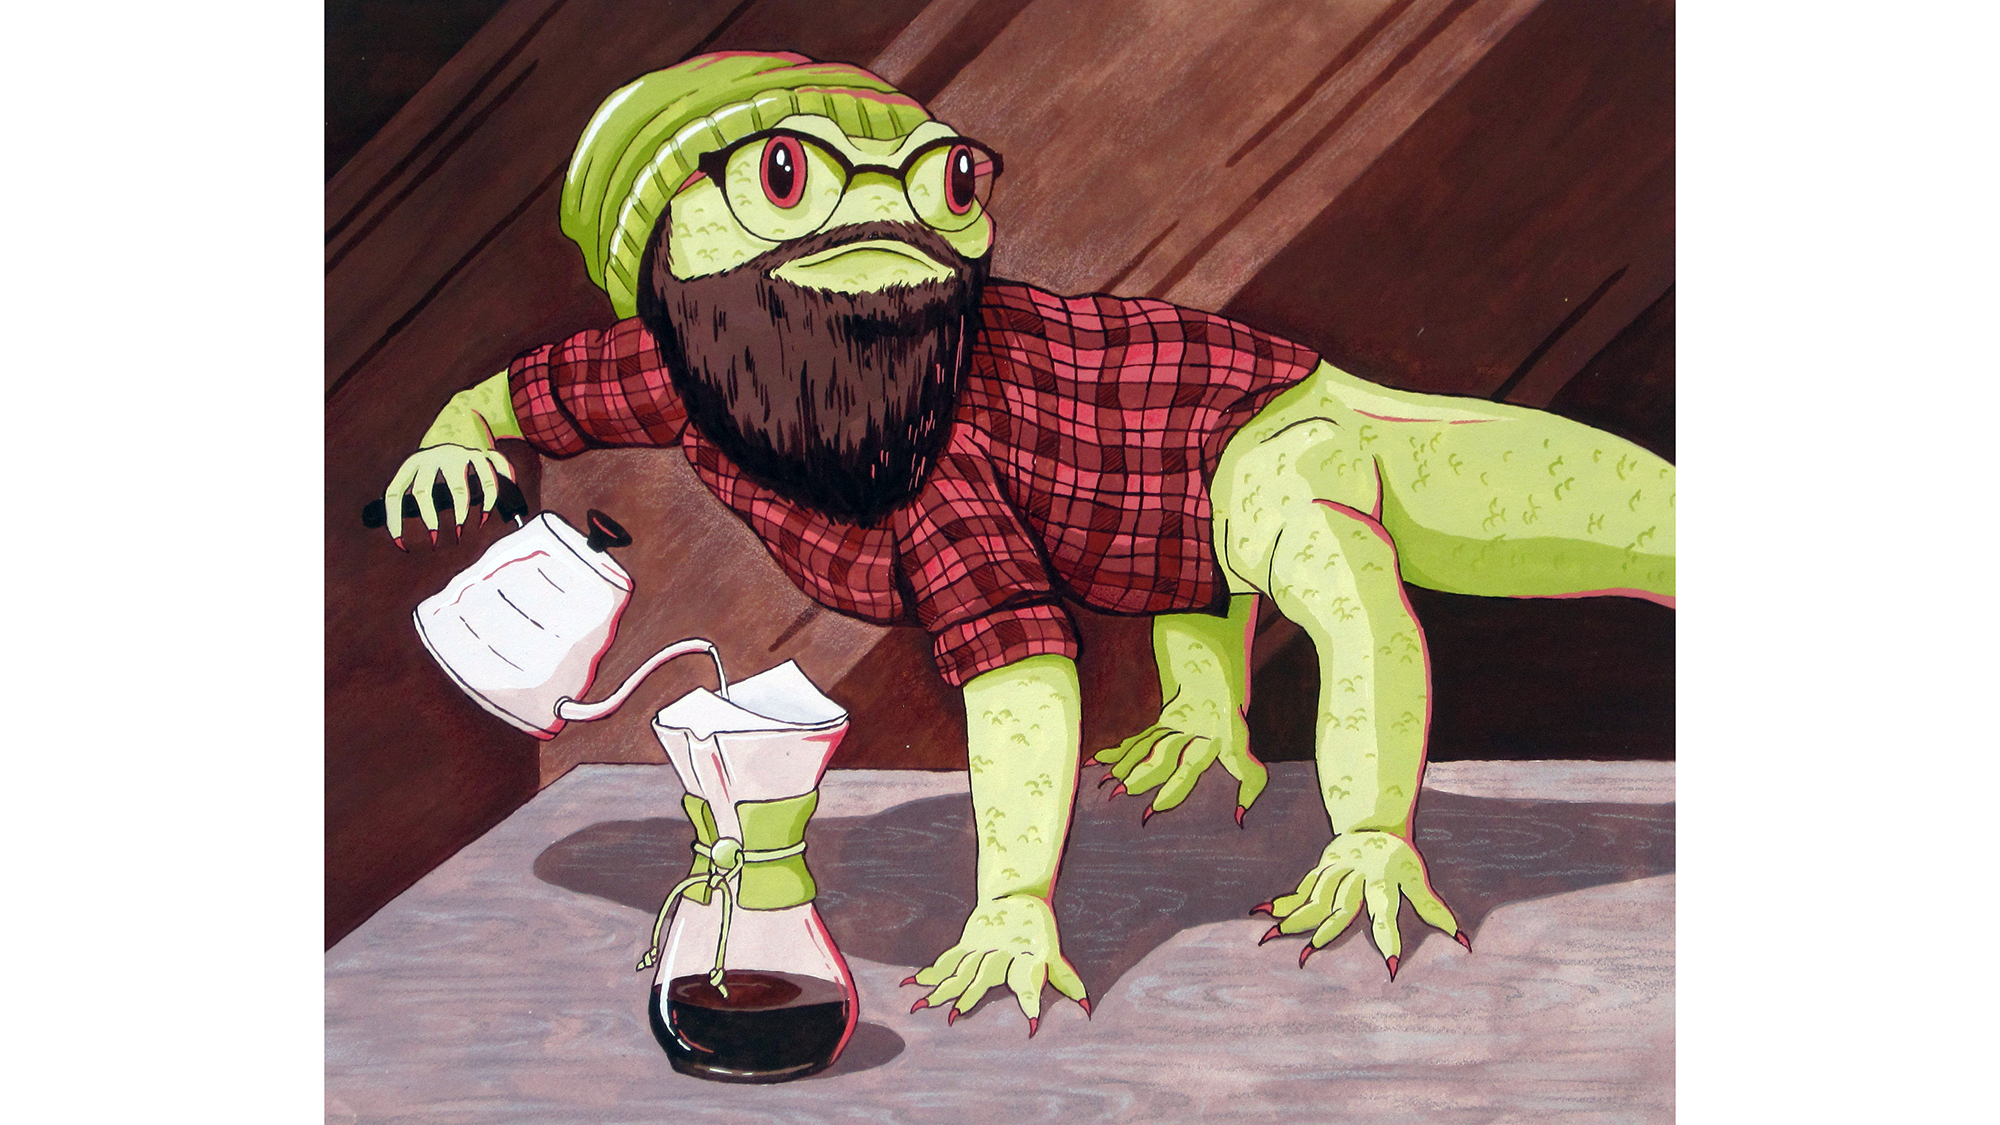 An illustration of a lizard with a beard pouring a drink